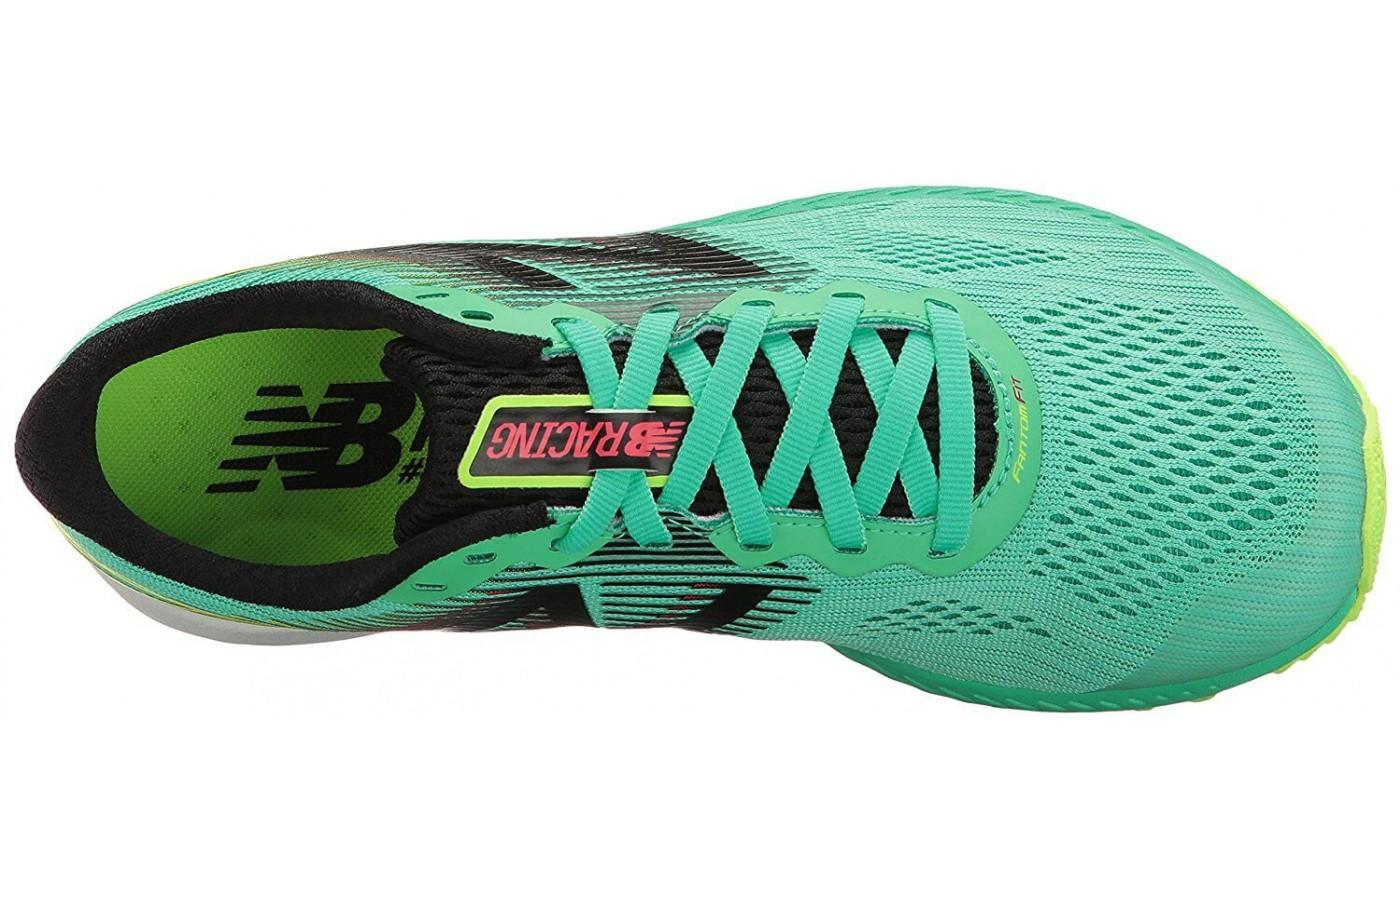 The upper of the New Balance 1400v5 features engineered mesh for breathability